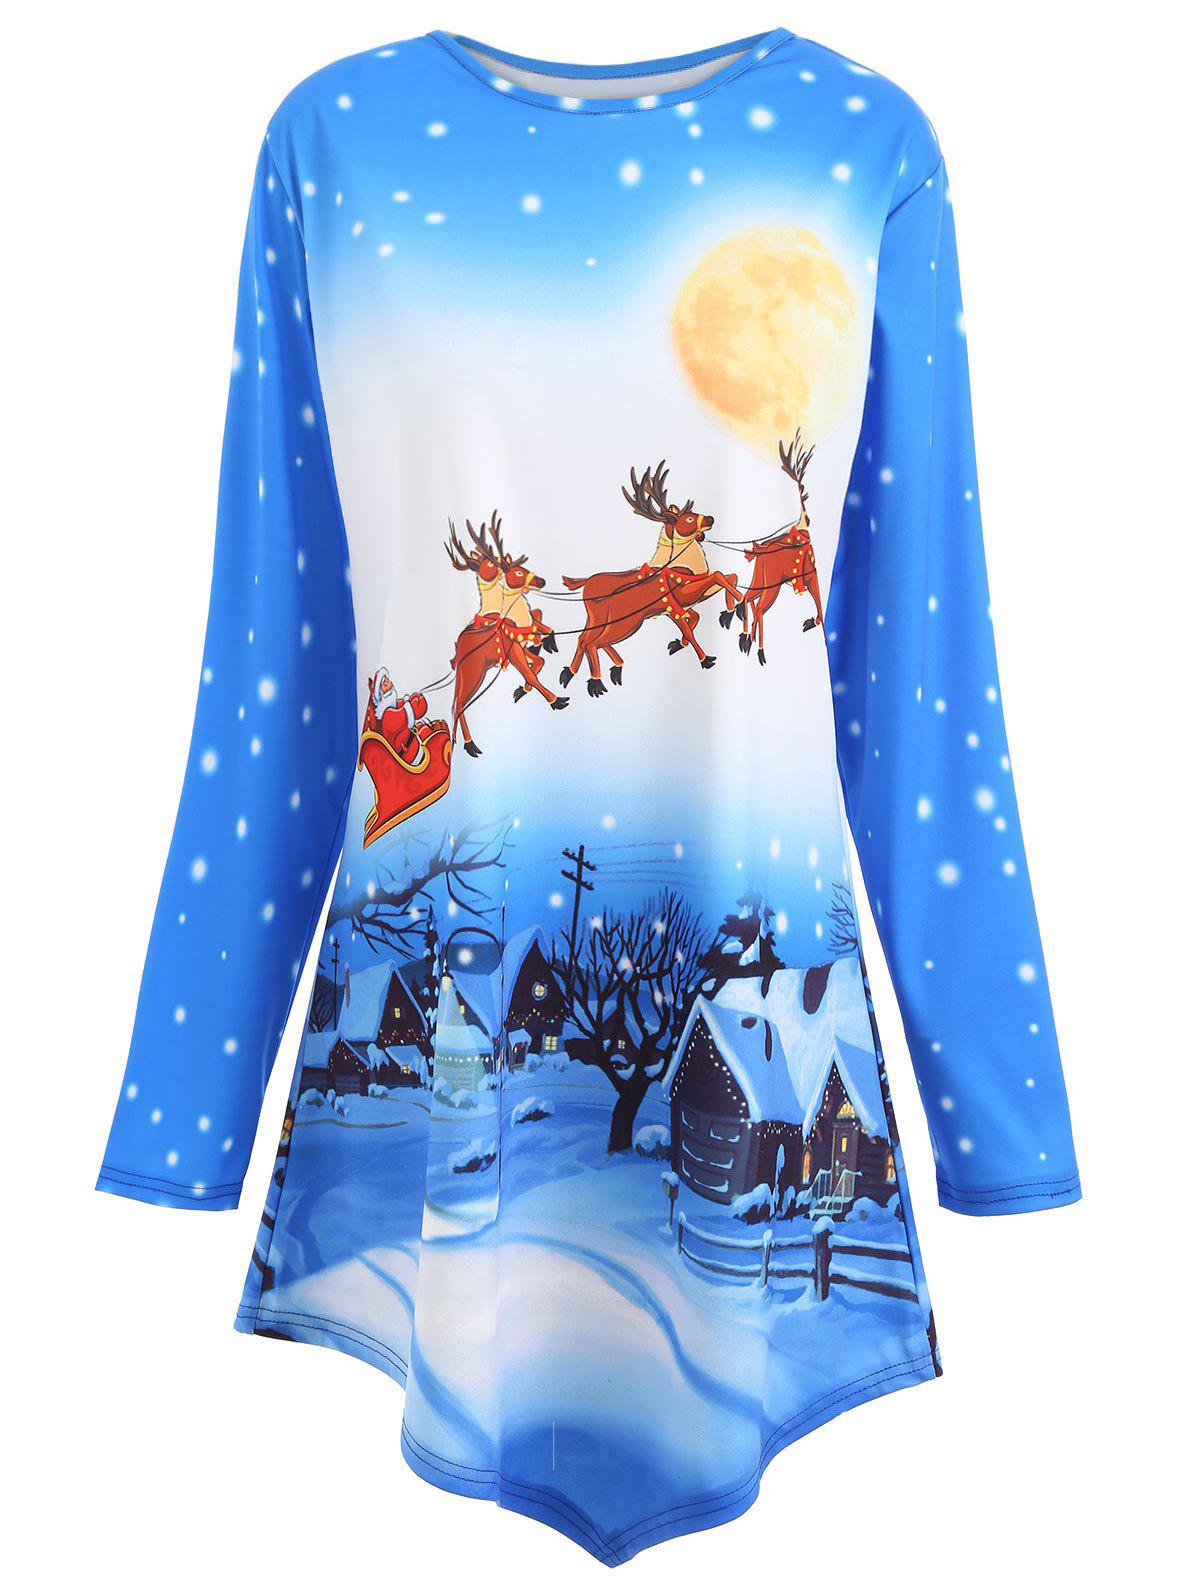 Plus Size Asymmetric Christmas Tunic TopWOMEN<br><br>Size: 4XL; Color: BLUE; Material: Cotton Blends,Polyester; Shirt Length: Long; Sleeve Length: Full; Collar: Scoop Neck; Style: Casual; Season: Fall,Winter; Pattern Type: Animal,Character,Print; Weight: 0.3700kg; Package Contents: 1 x Tee;